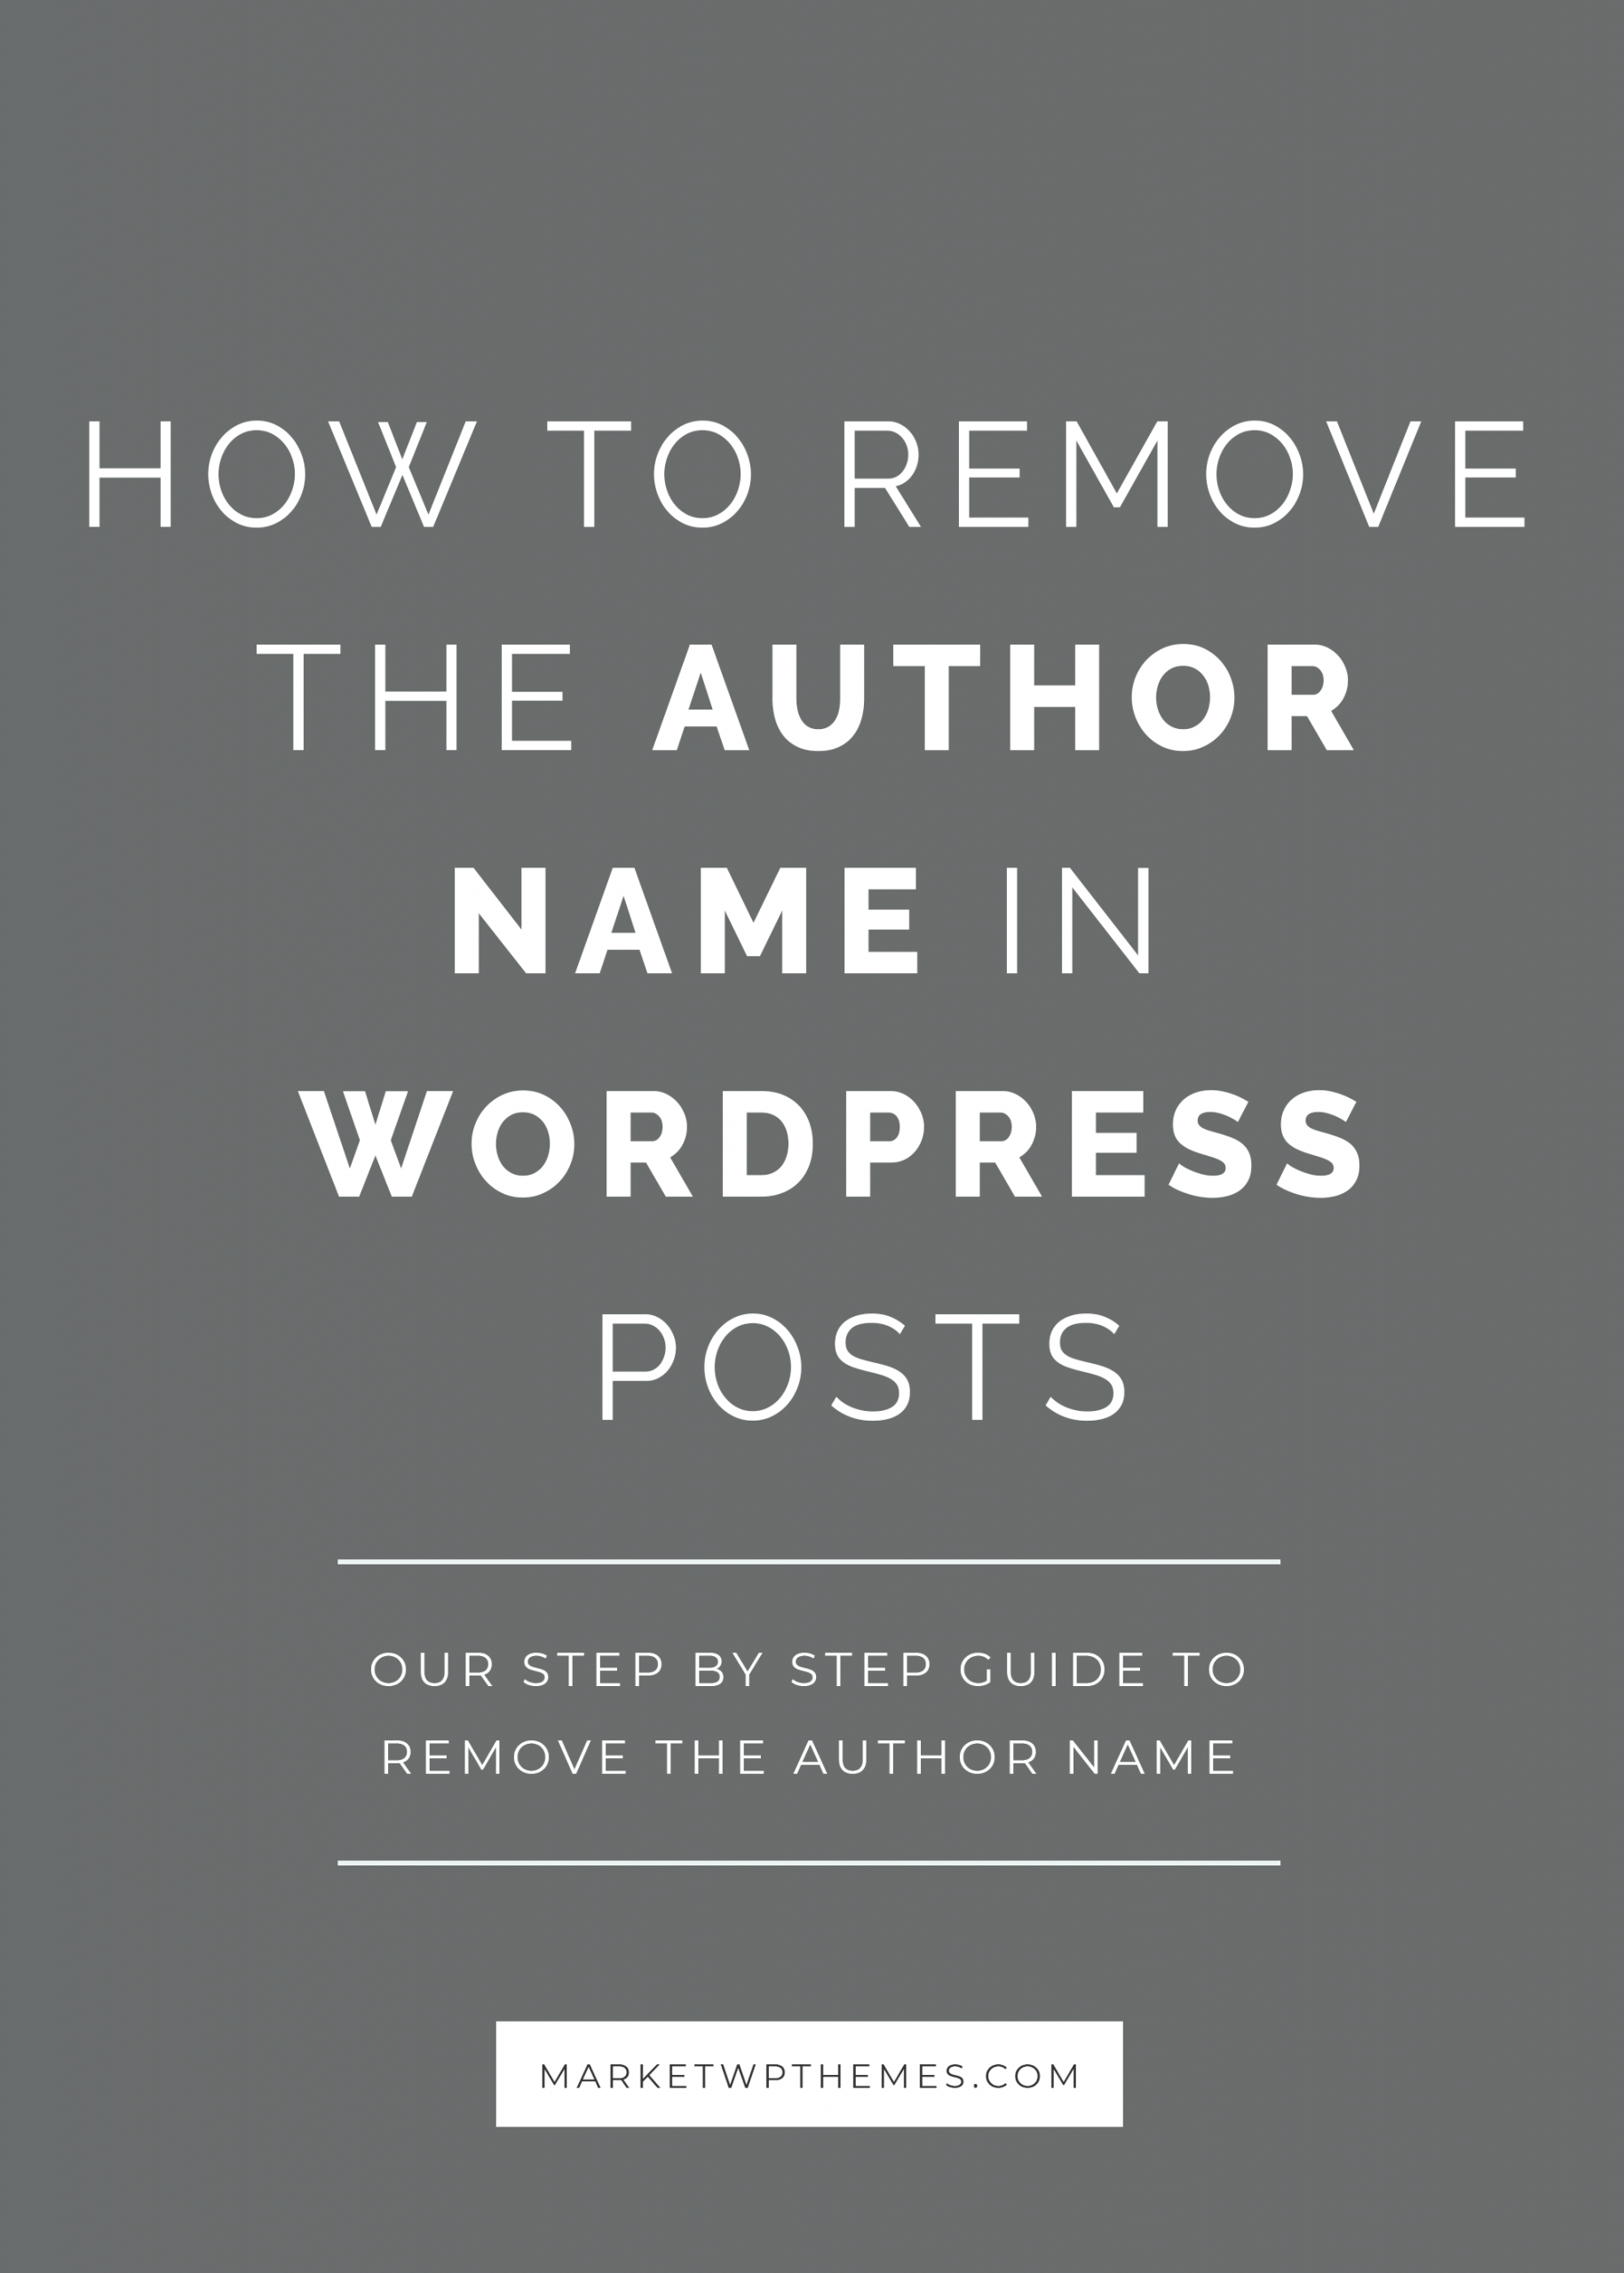 How to Remove the Author Name in WordPress Posts